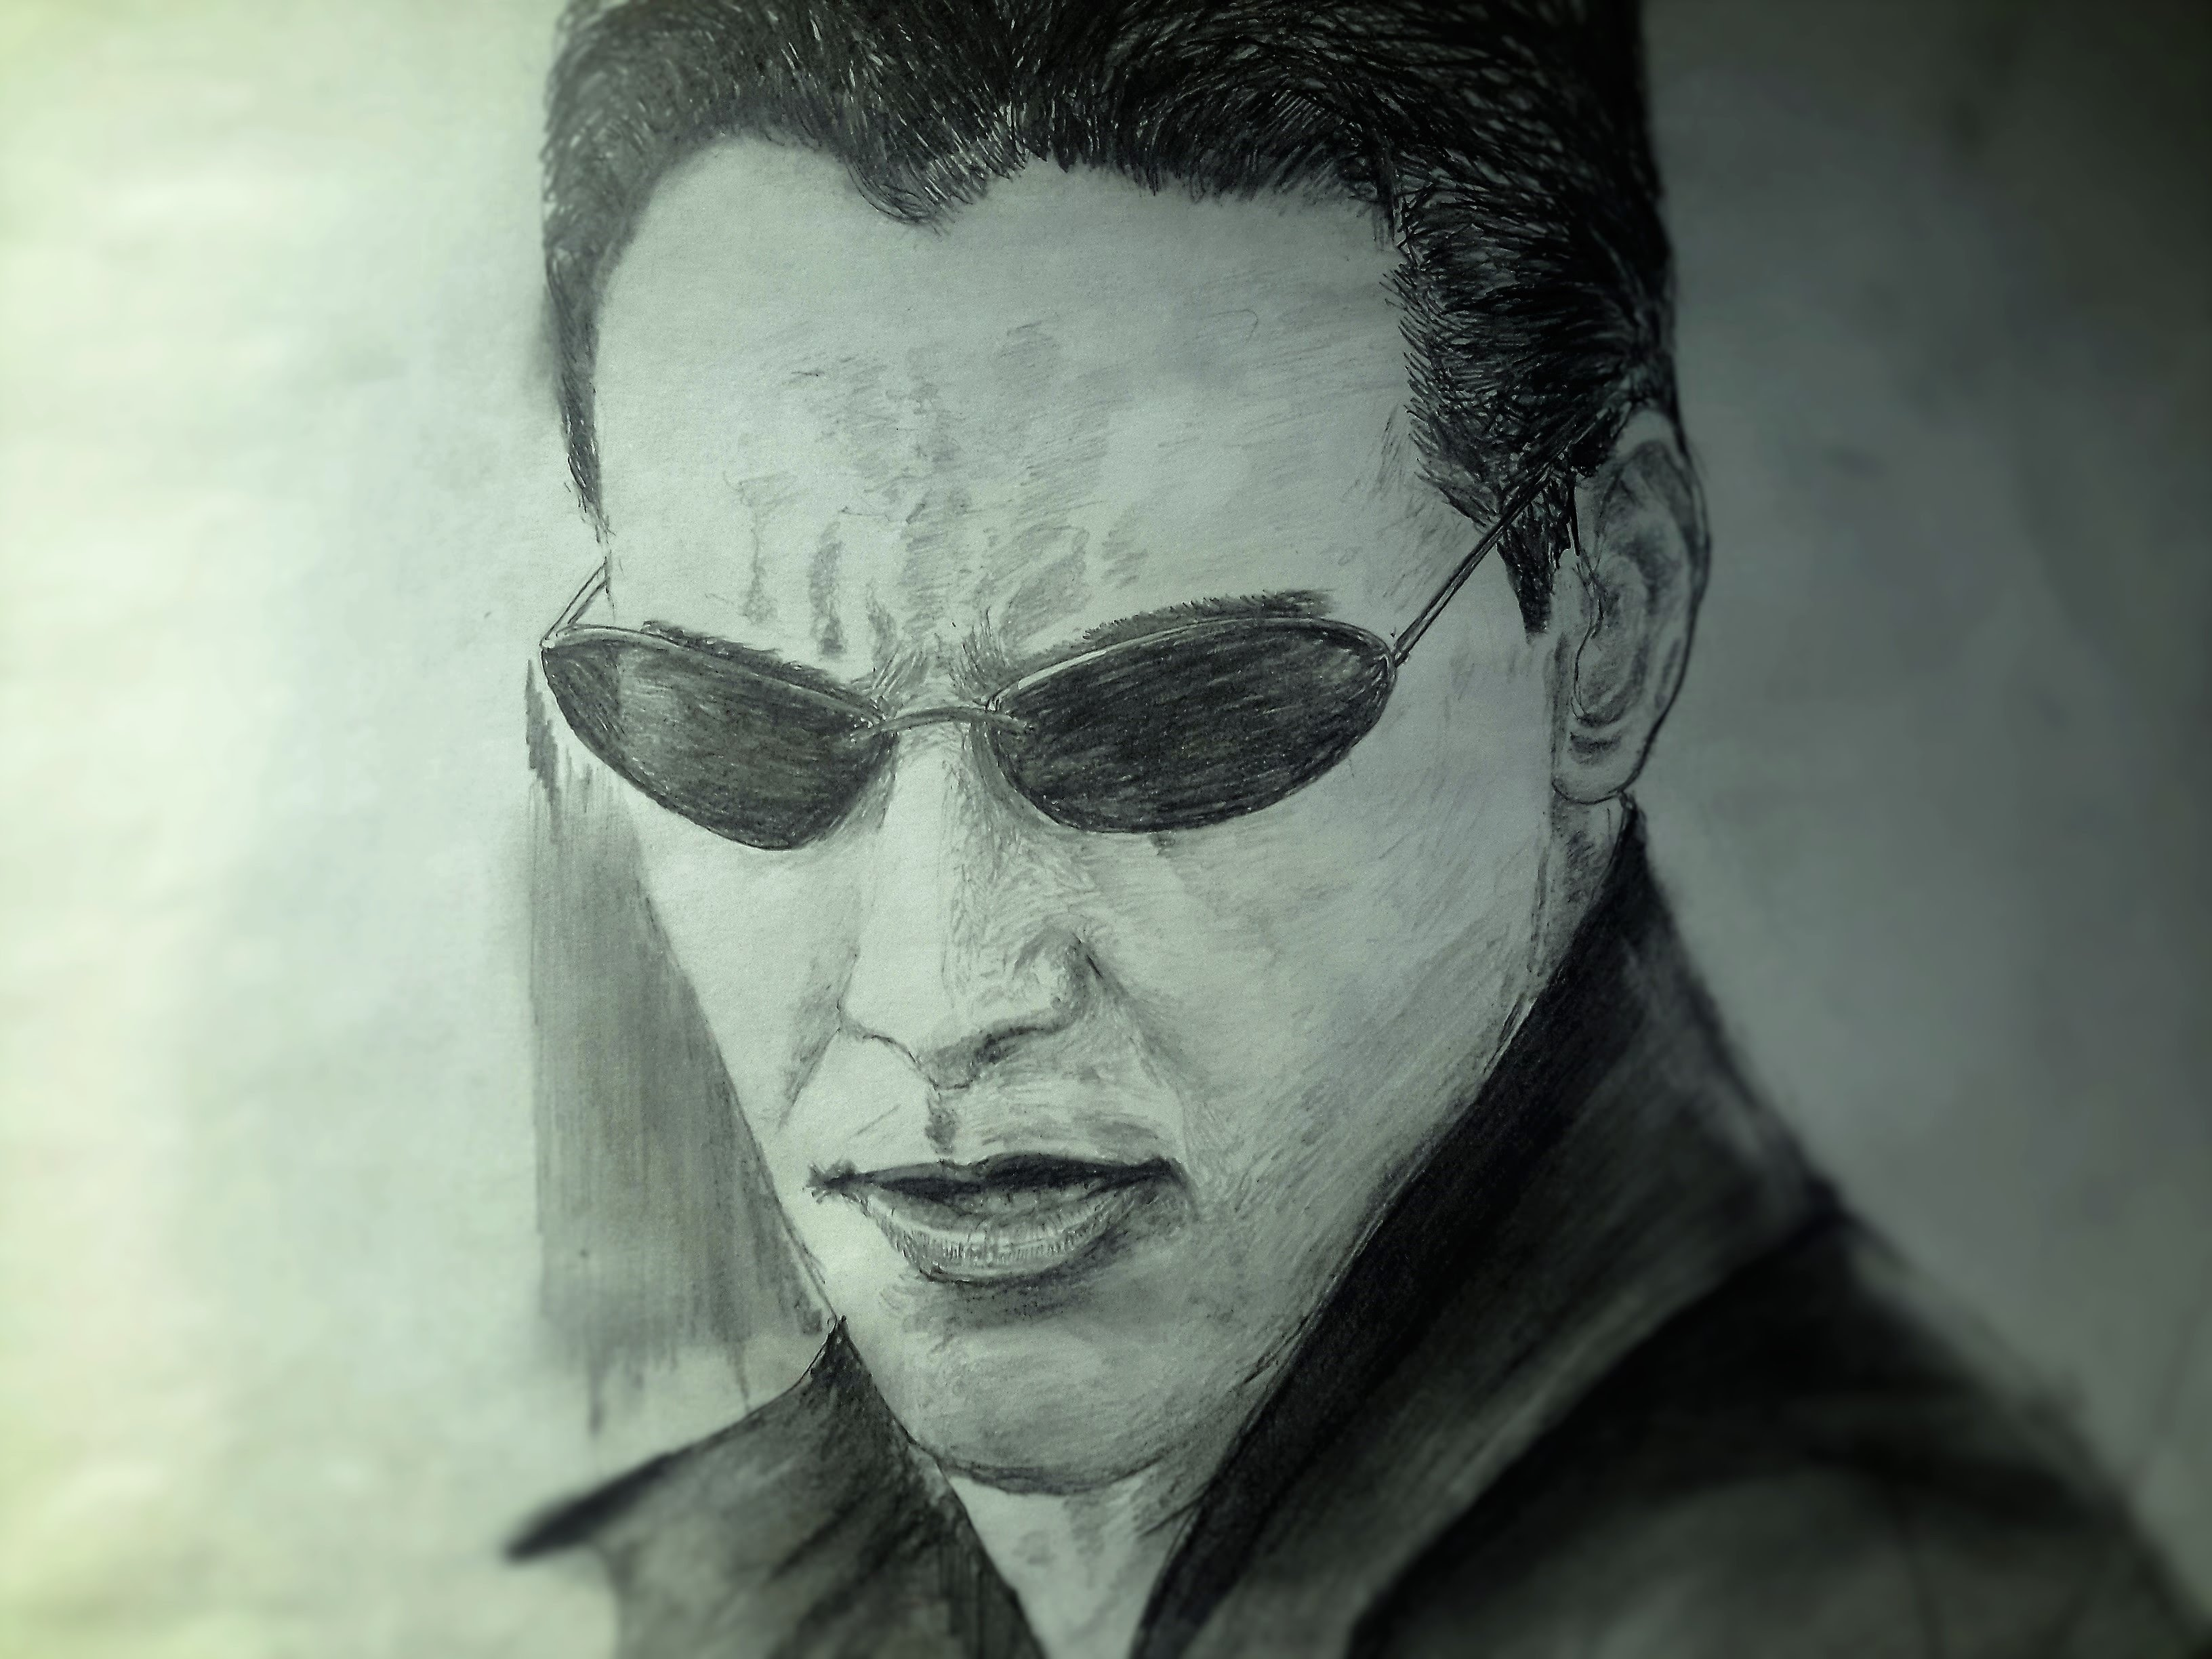 3264x2448 Drawing Keanu Reeves As Neo From The Matrix 1999